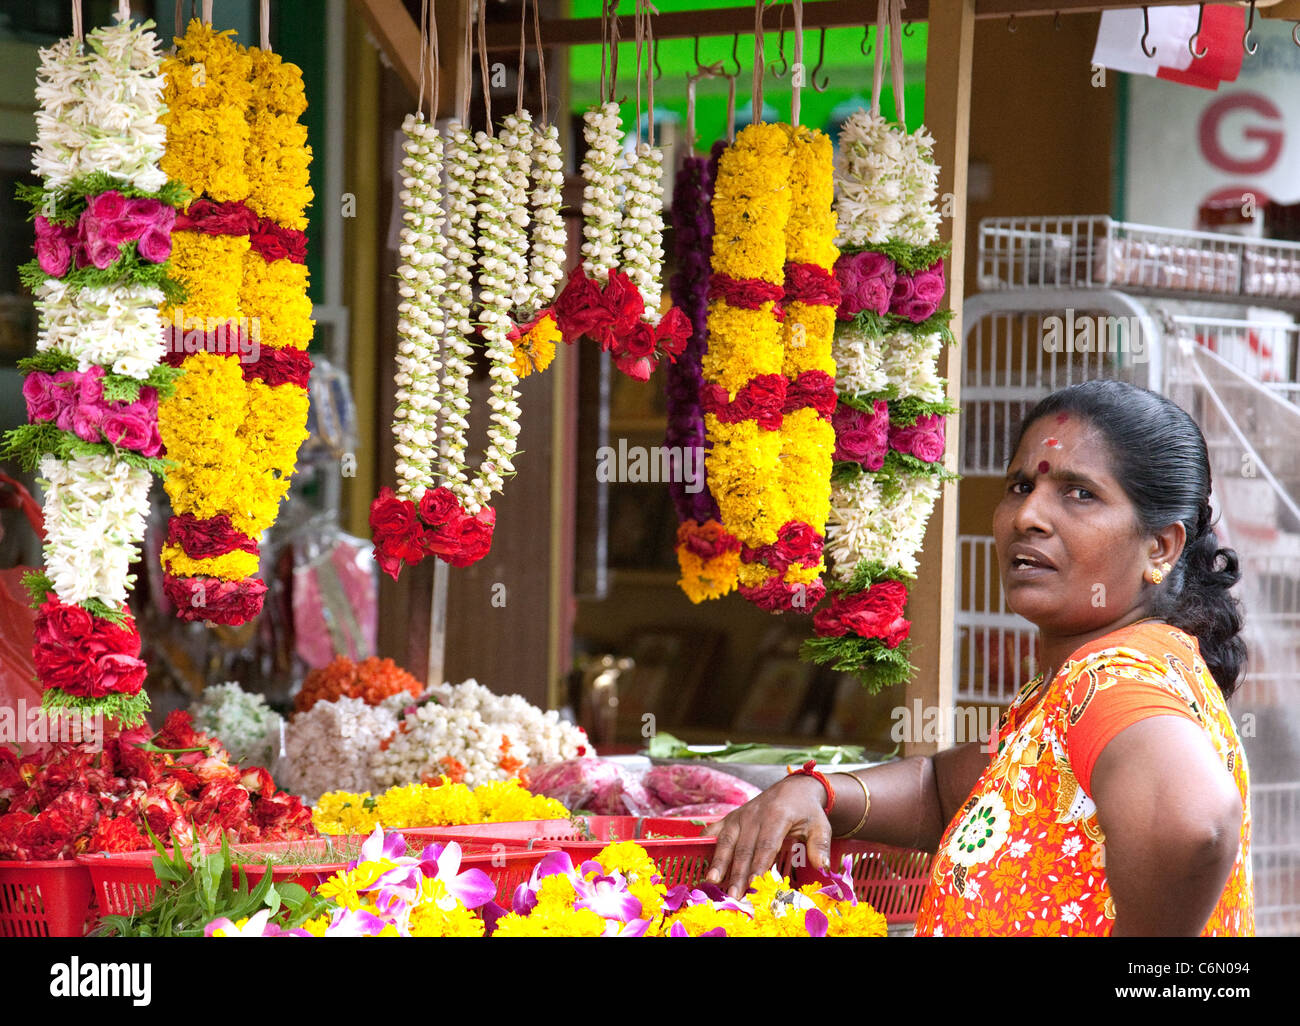 Indian woman shopkeeper, Little India, Singapore Asia - Stock Image